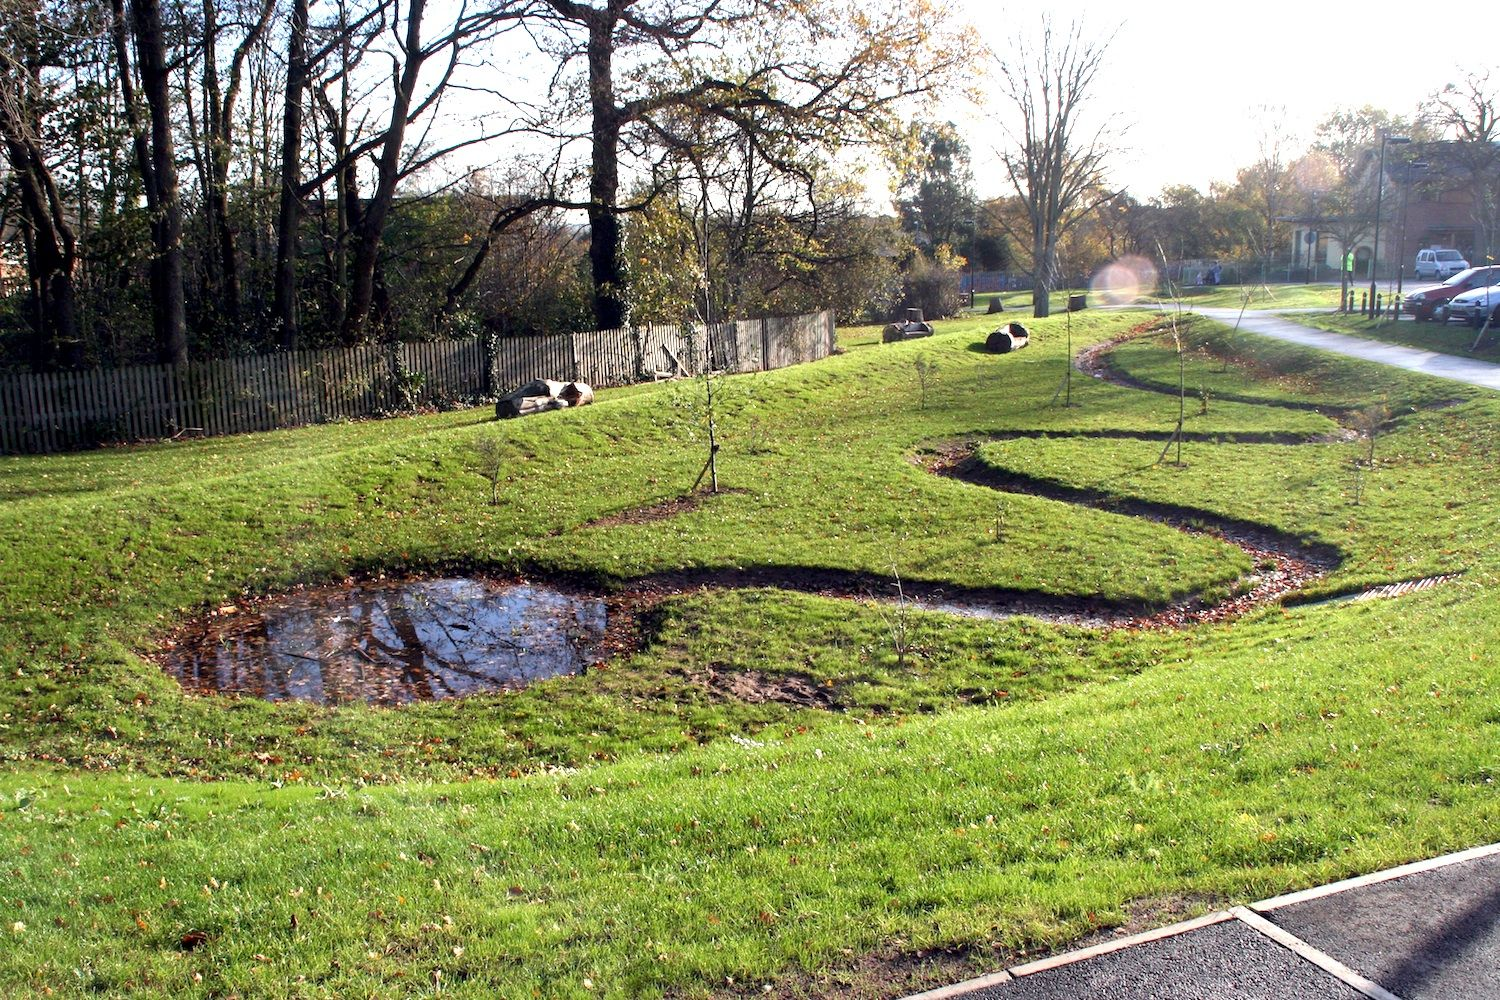 Snaking swale and circular basin - playful yet space ...